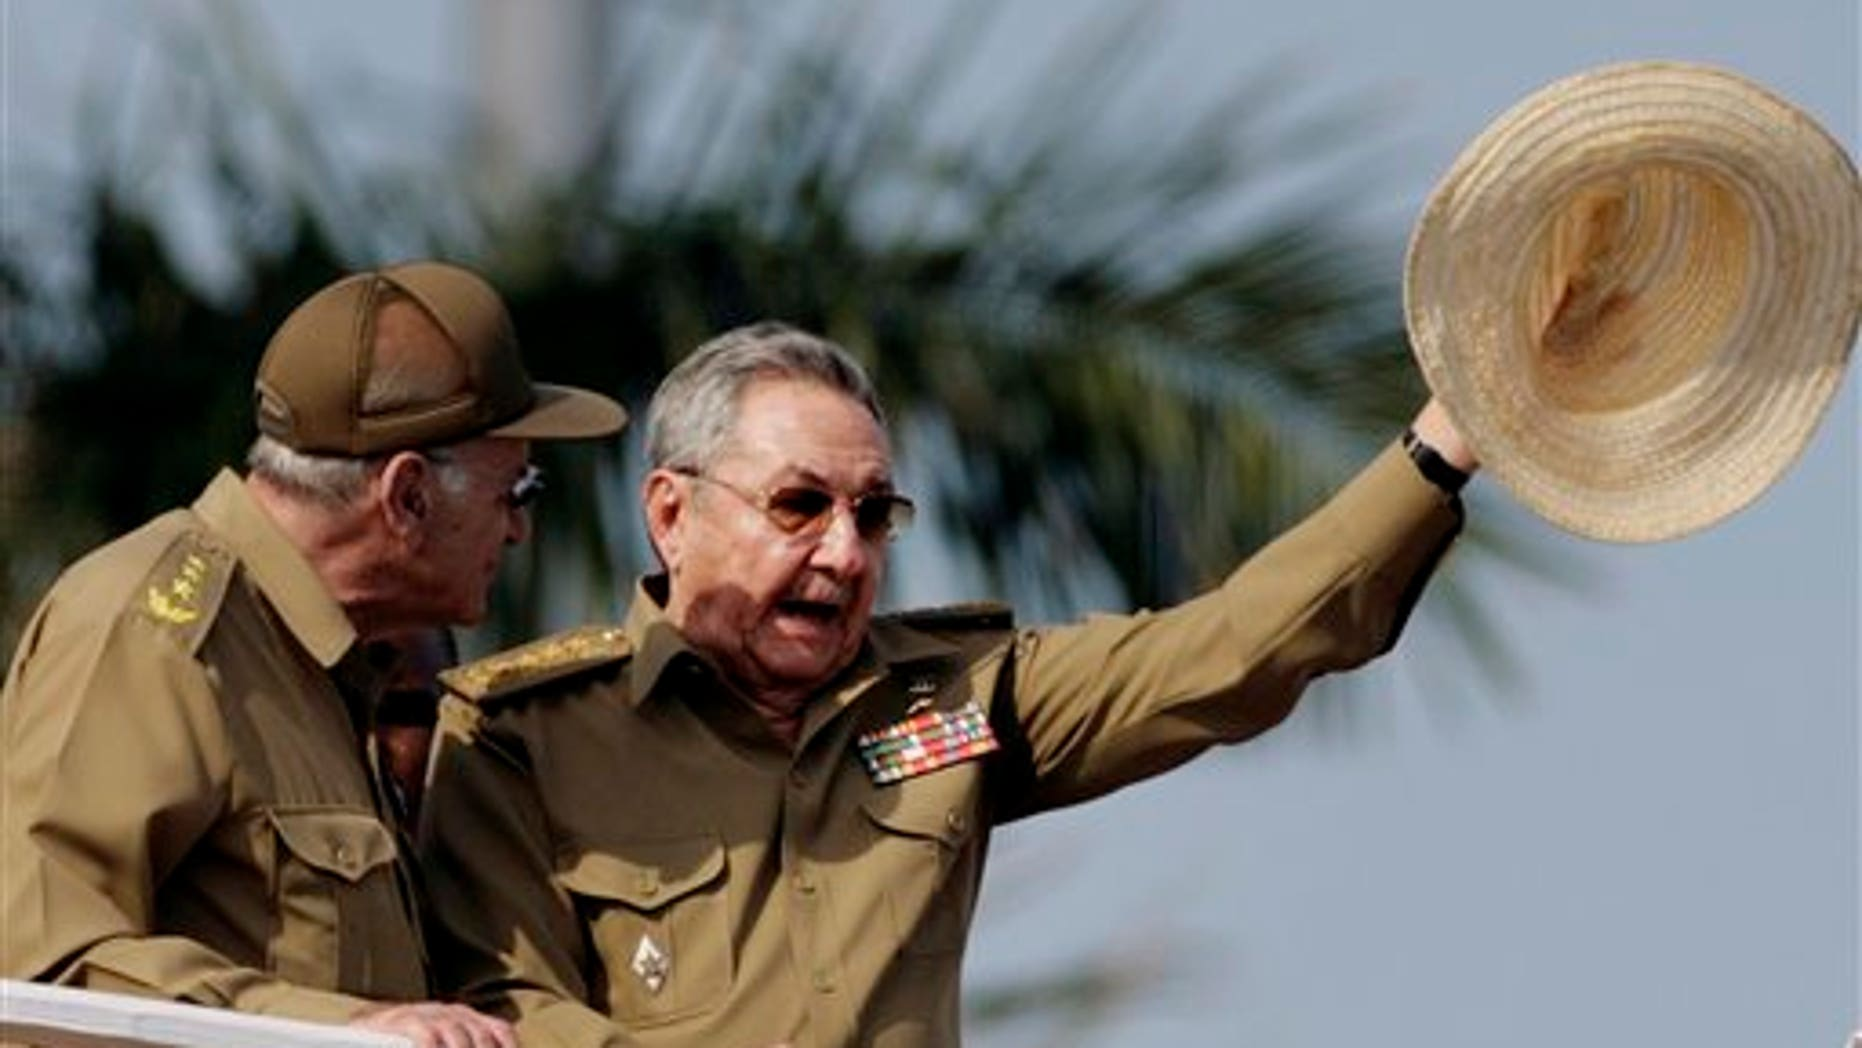 ALTERNATIVE CROP OF HAV121 - Cuba's President Raul Castro waves his hat during a military parade to commemorate the 50th anniversary of the Bay of Pigs failed invasion in Havana, Cuba, Saturday April 16, 2011. Cuba kicked off a crucial Communist Party congress Saturday with the parade to mark 50 years since the defeat of CIA-backed exiles at the Bay of Pigs.  At left is Vice President of the Council of State of Cuba and the Cuban Minister of the Interior Abelardo Colomé. (AP Photo/Javier Galeano)